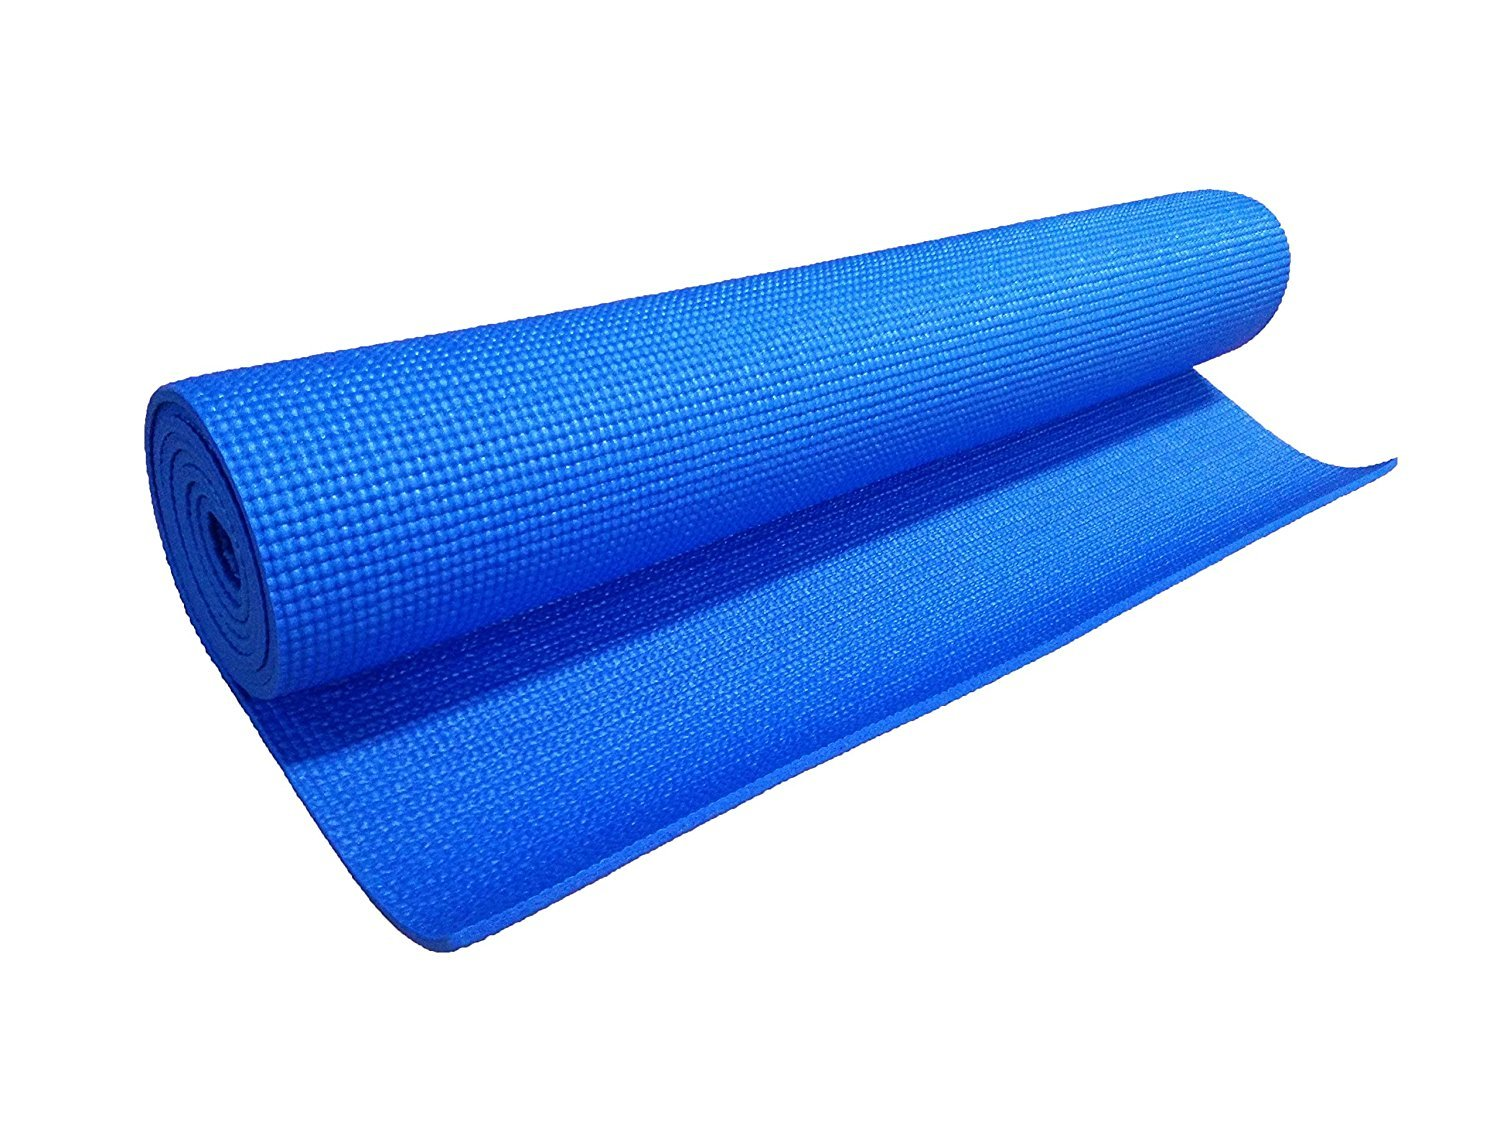 Gym Mats: Buy Gym Mats Online at Best Prices in India - Amazon.in